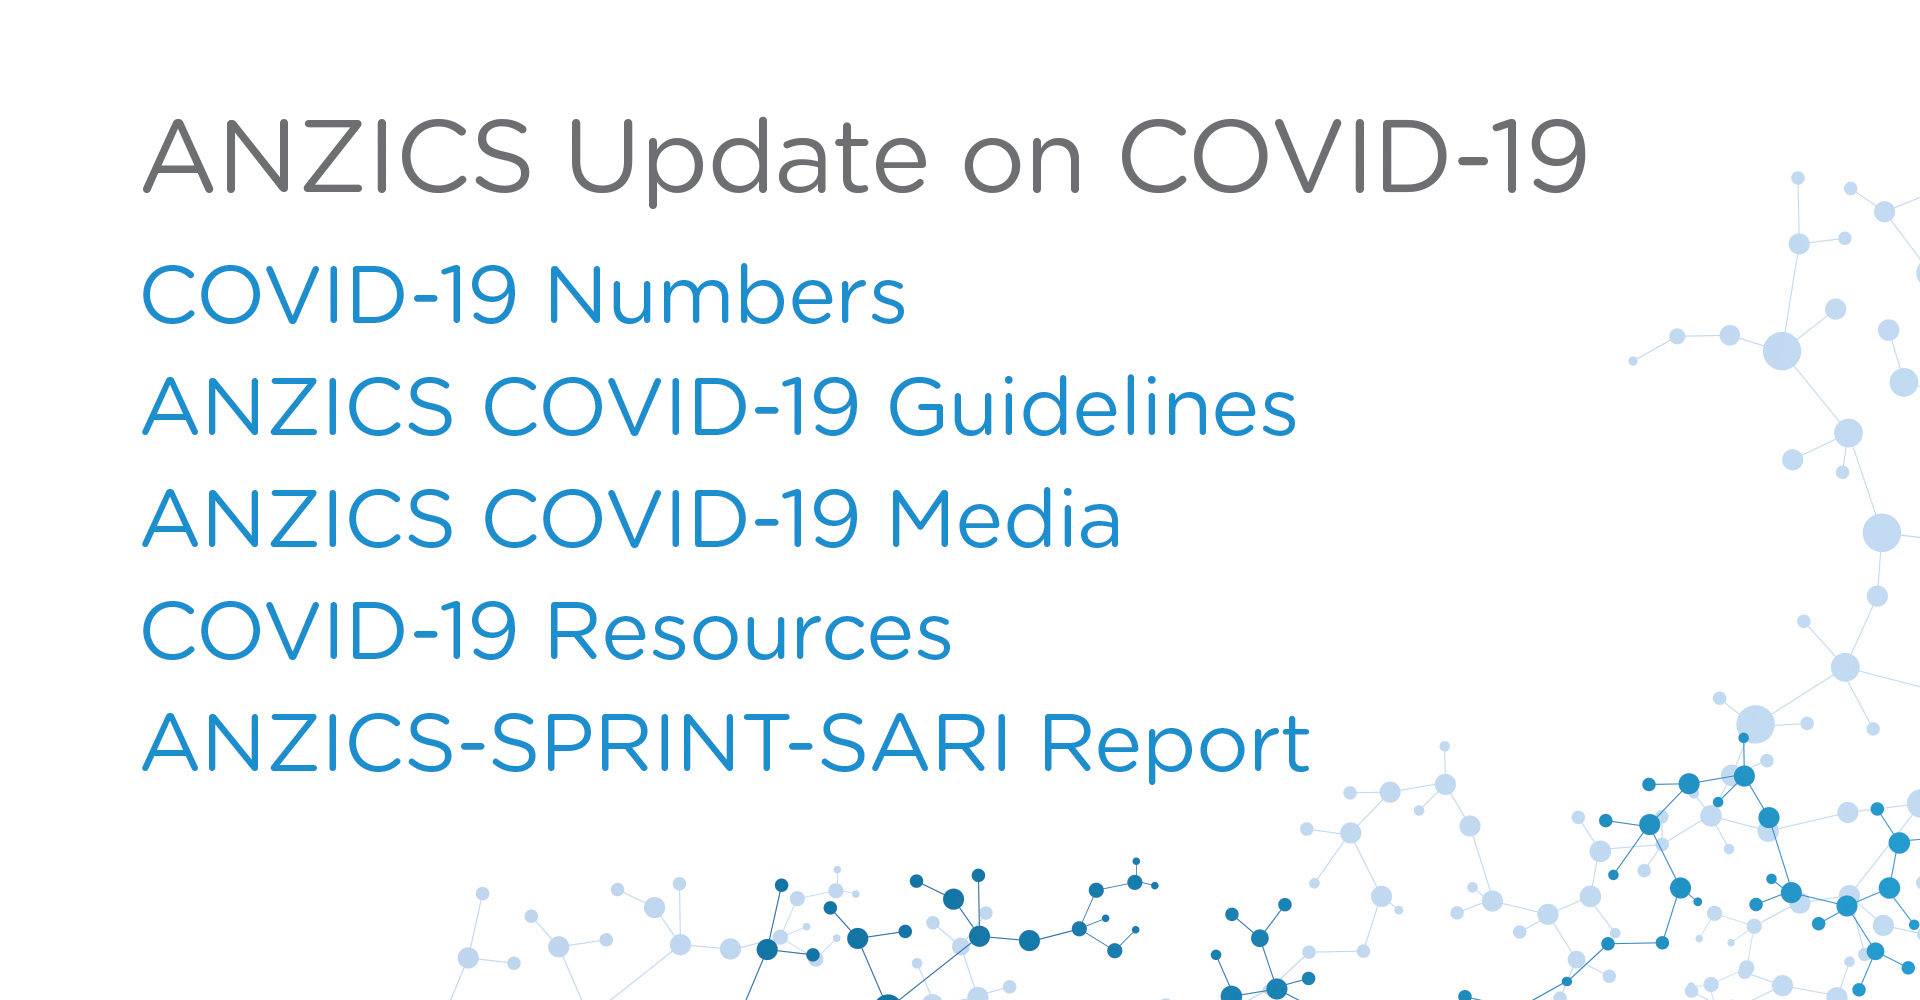 ANZICS Update on COVID-19